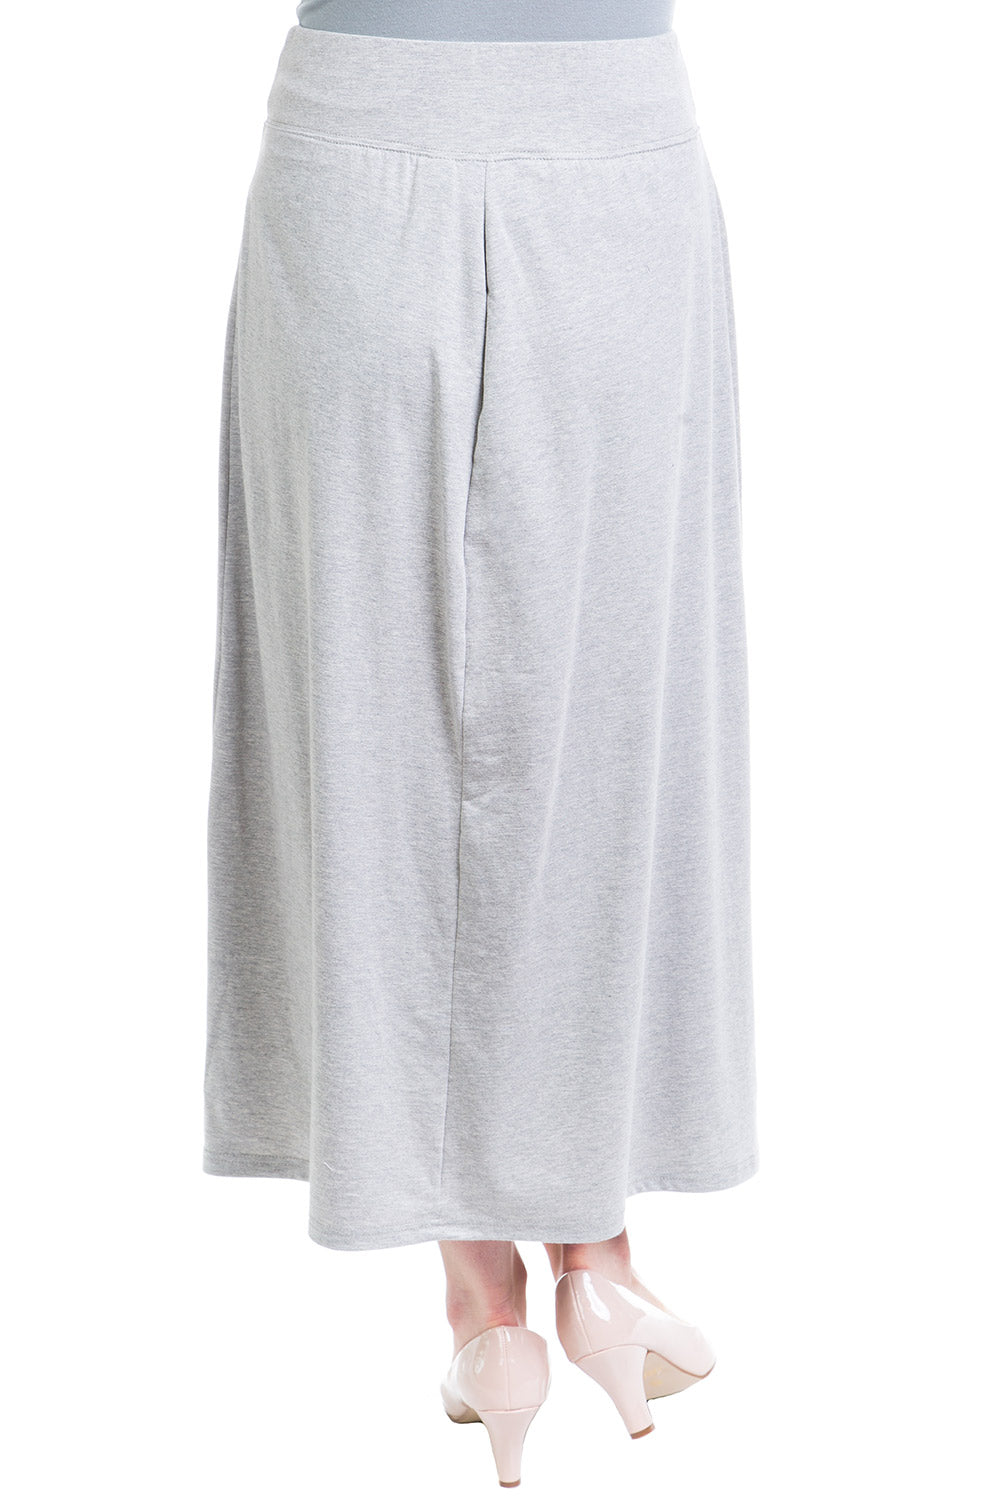 Type 2 Venus Skirt In Heathered Gray